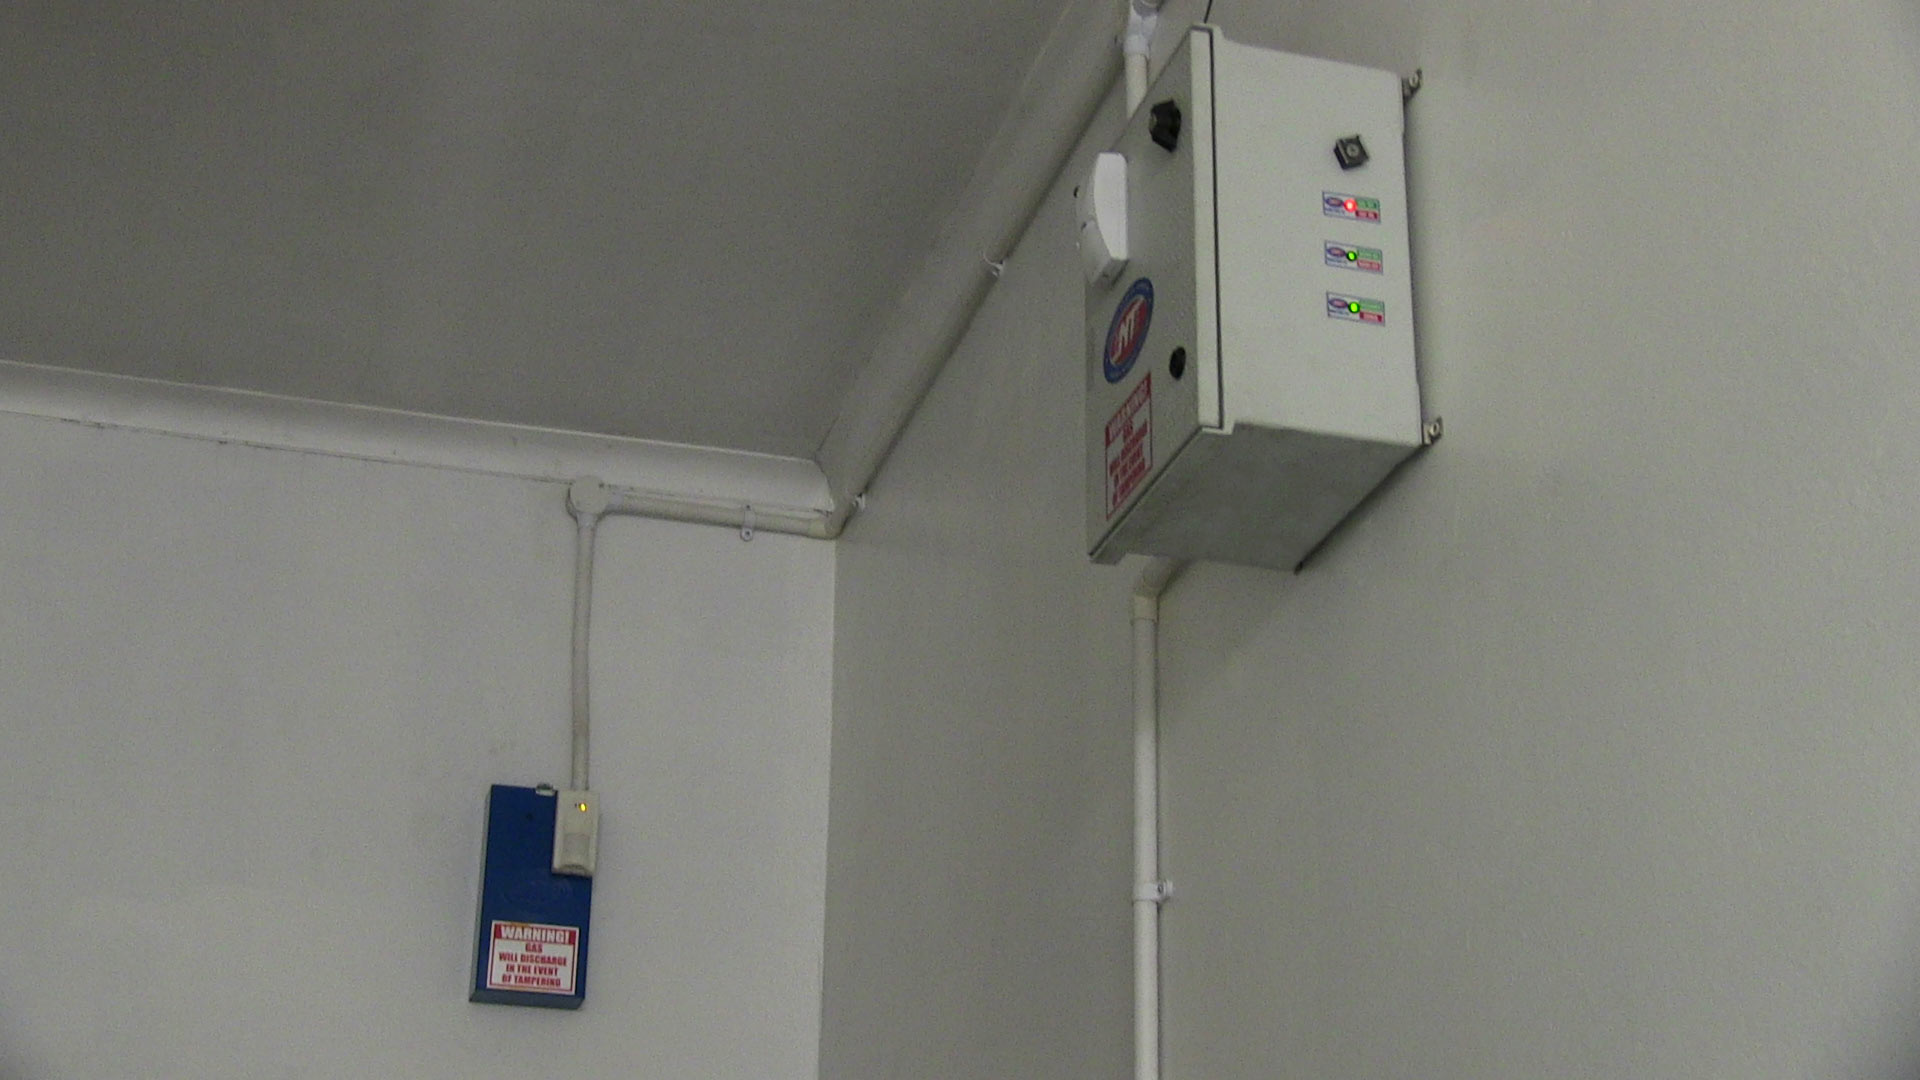 Pepper gas alarm system installed in a substation.